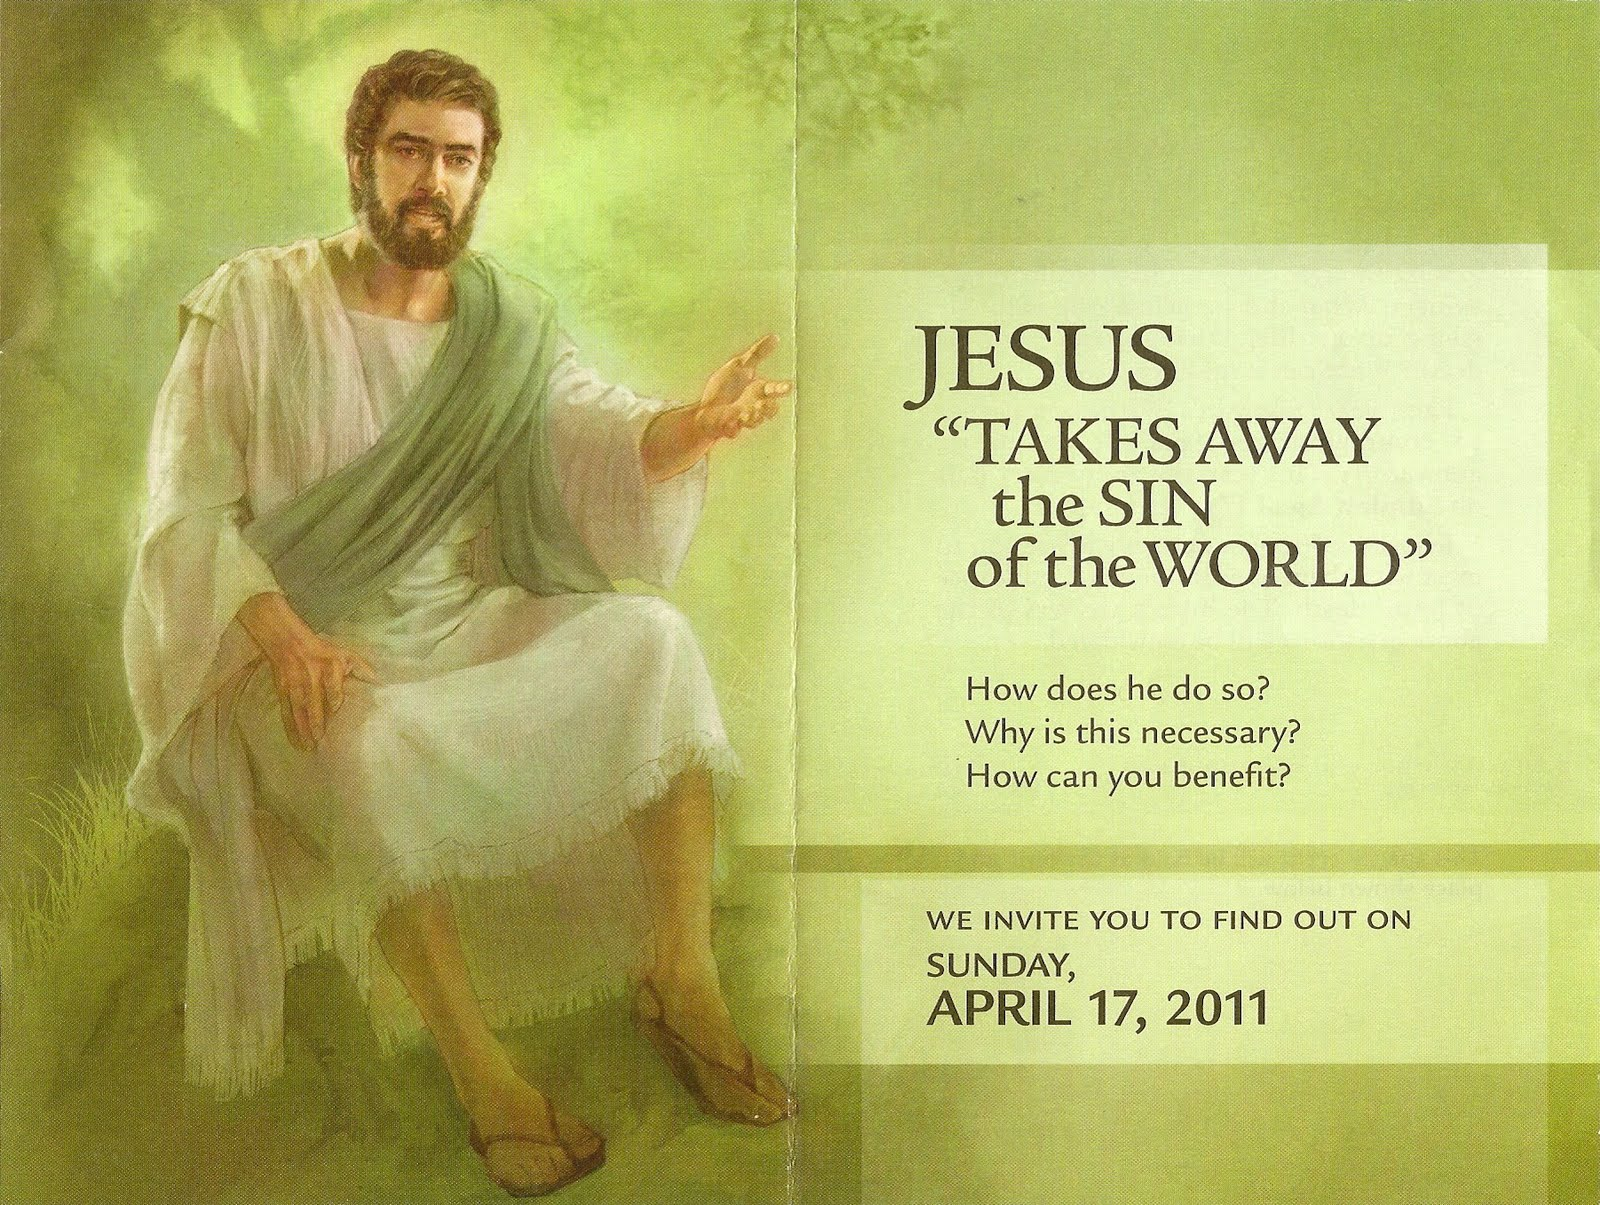 Jesus is Jehovah!: Re: `Jesus said, The Father is greater